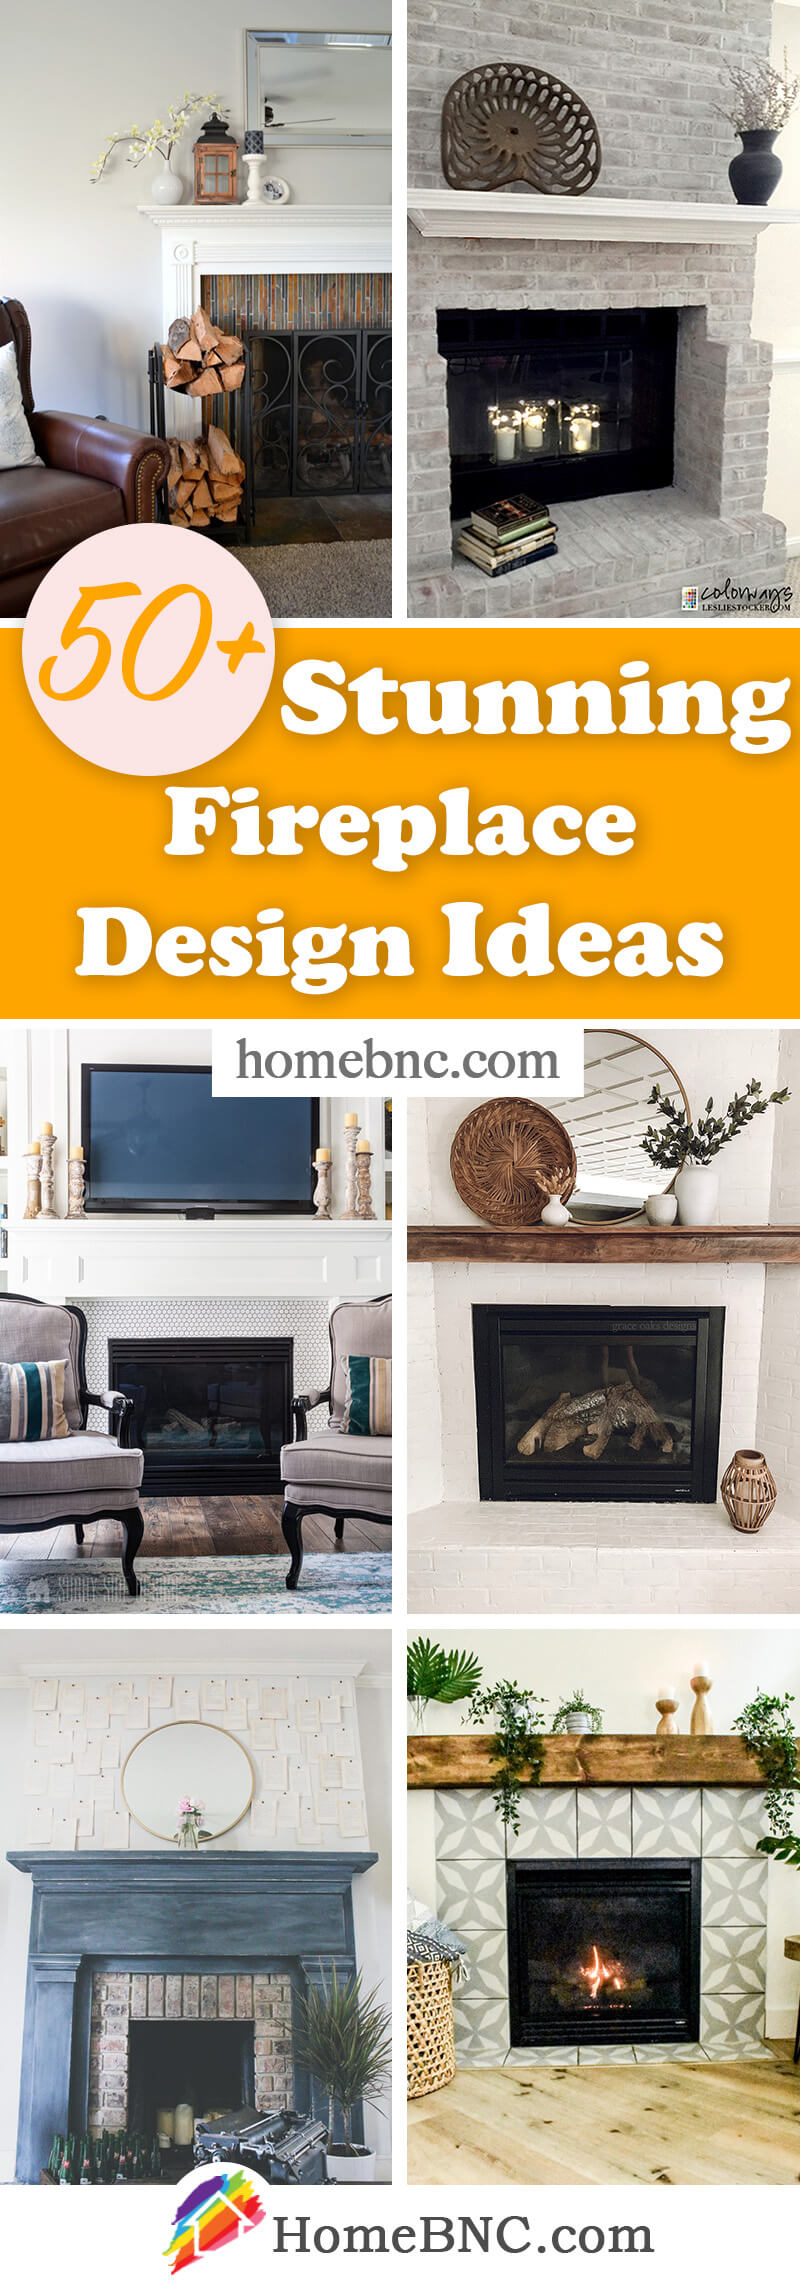 Best Fireplace Designs